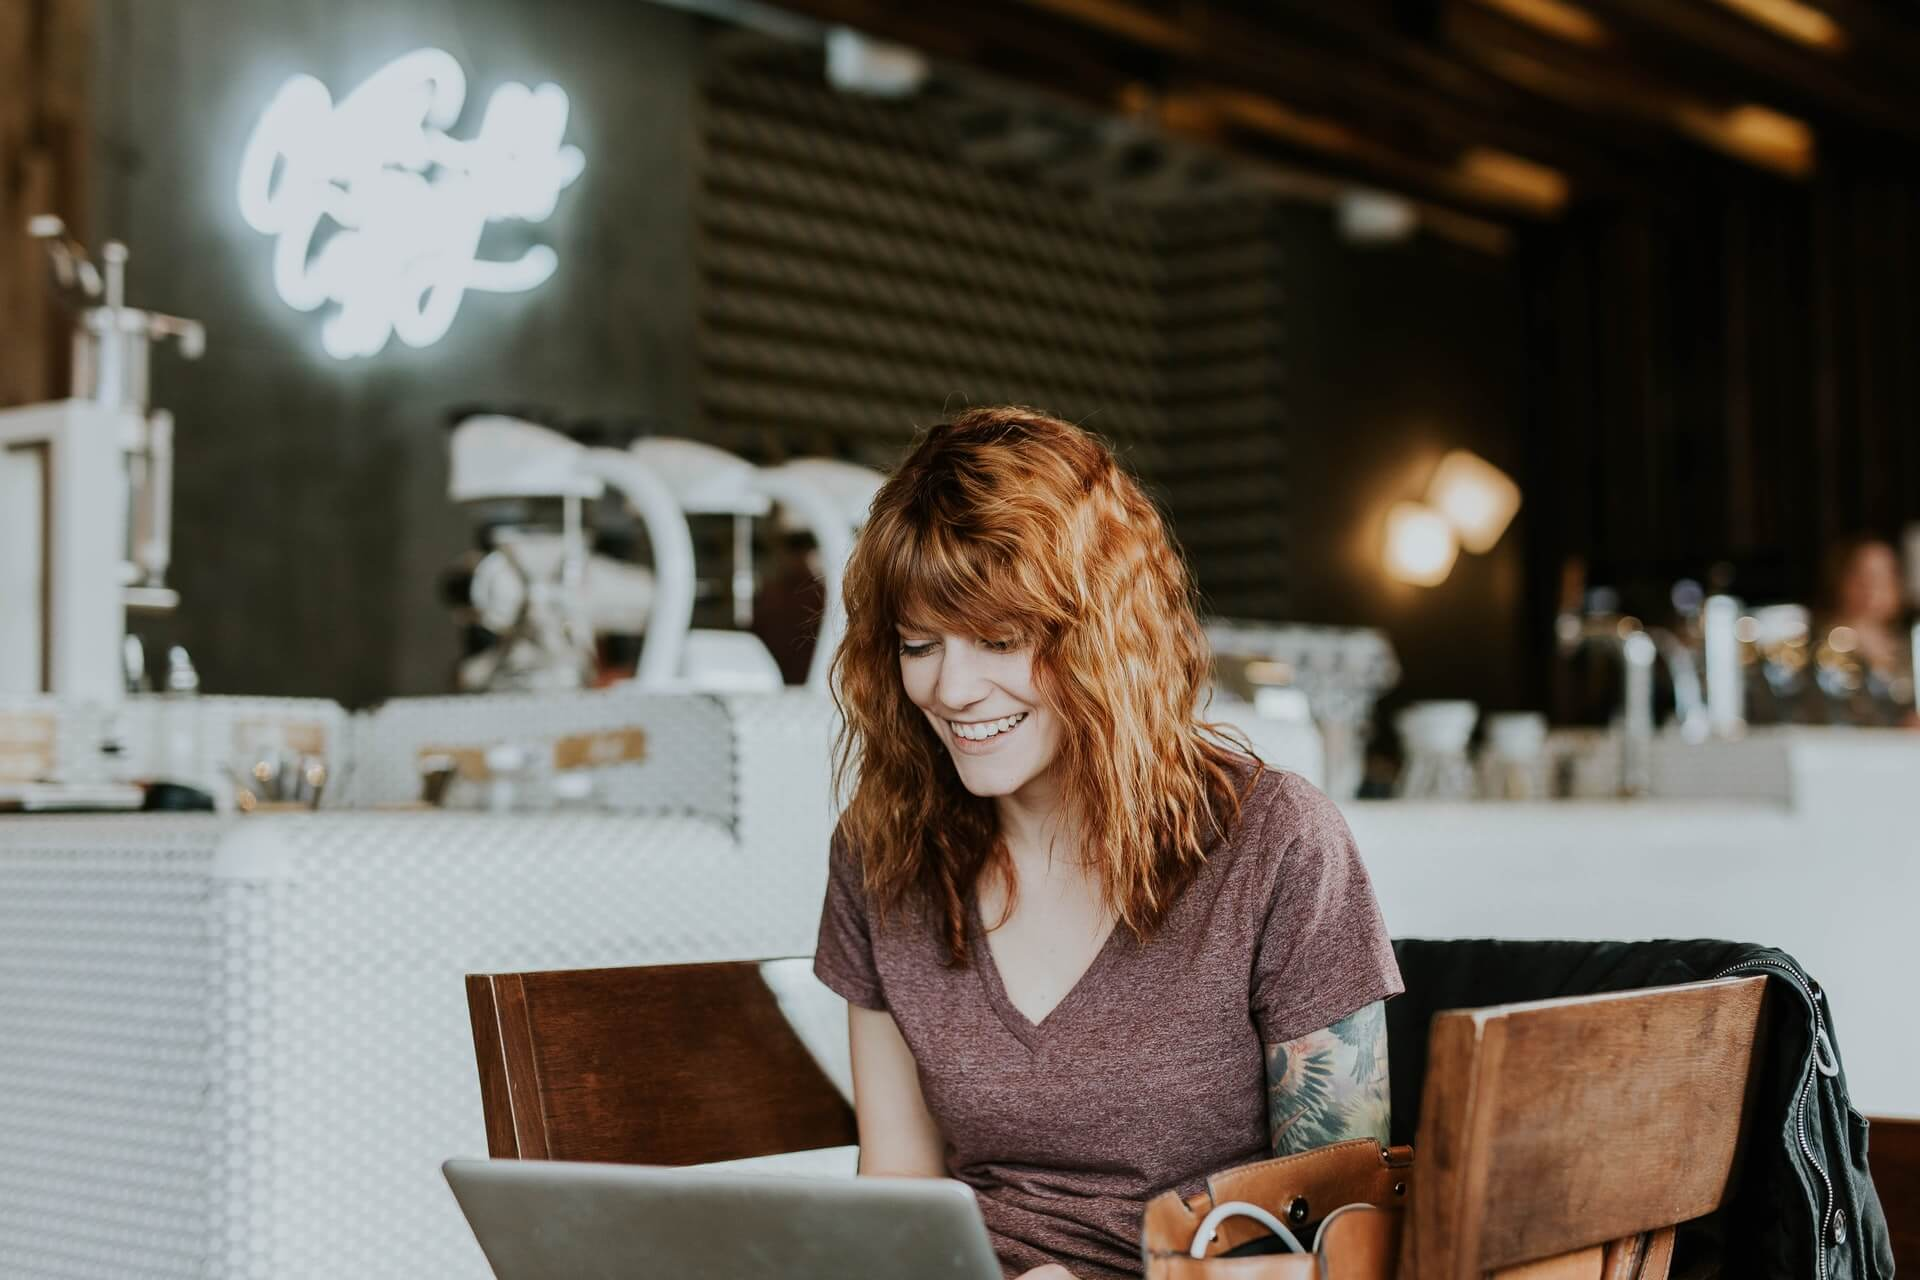 Female digital marketing professional works remotely in a coffee shop and manages automated bidding strategies.